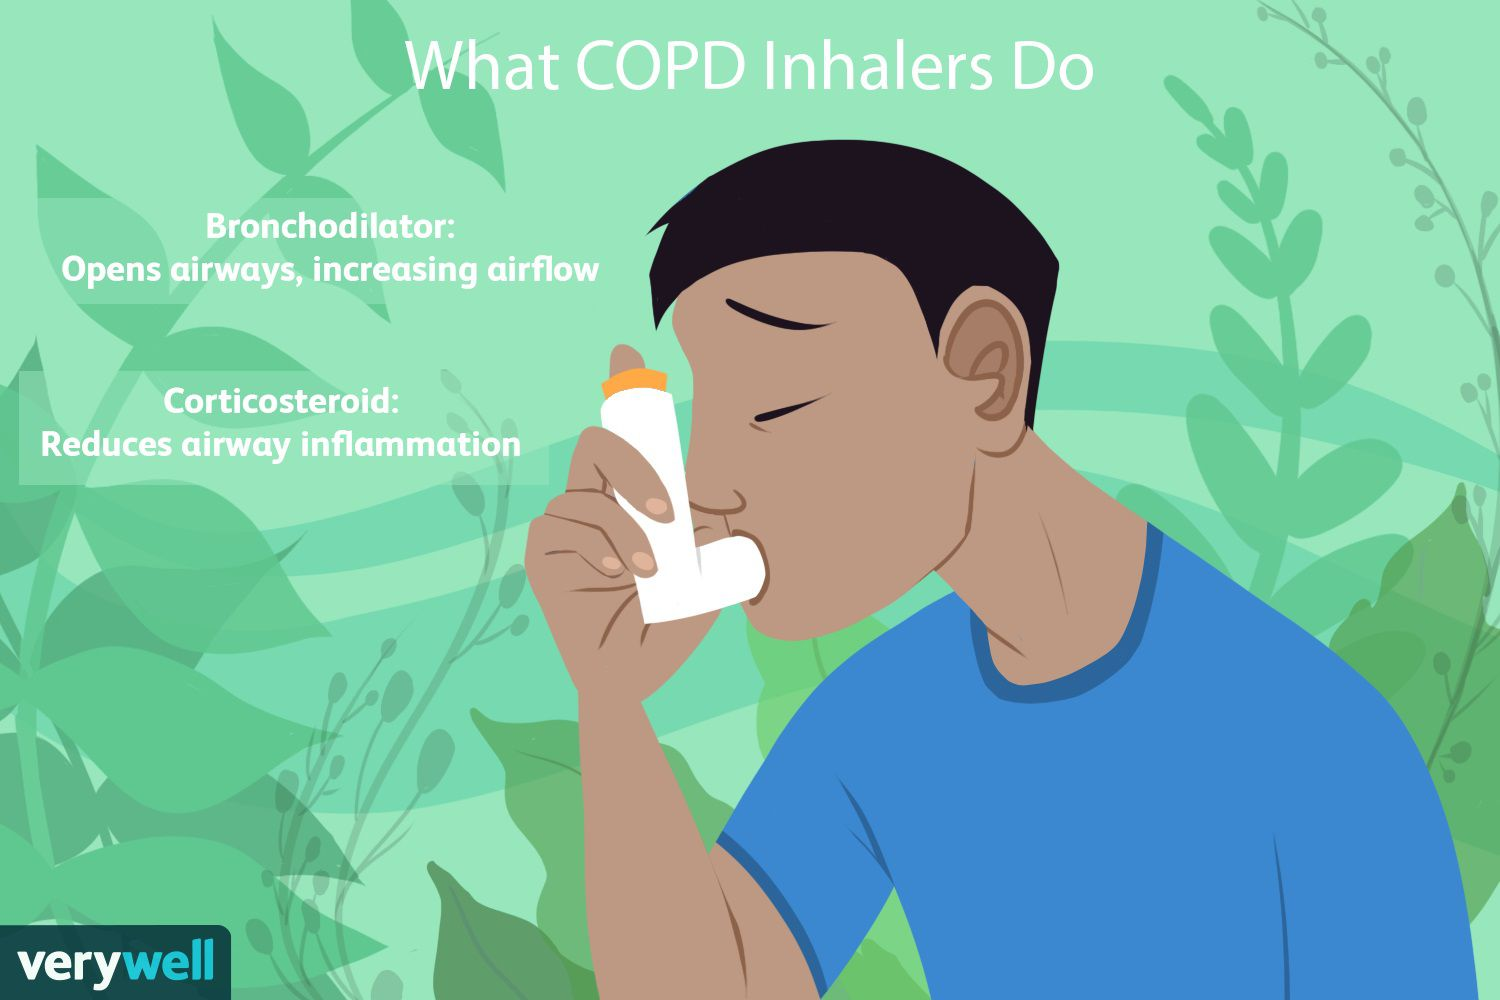 What COPD Inhalers Do